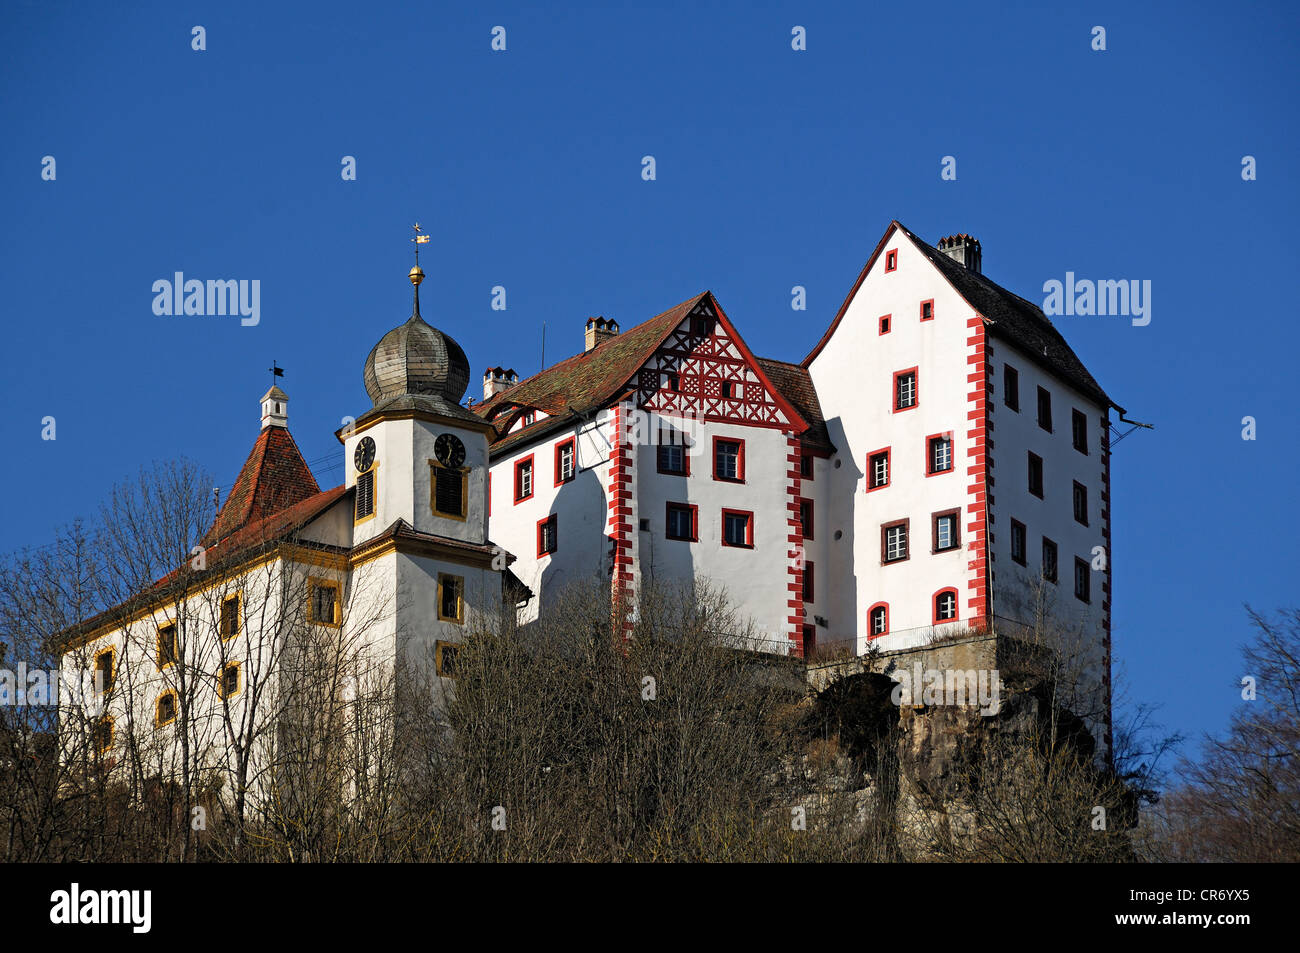 Burg Egloffstein Castle, mentioned in 1358, with castle capel from 1750, Egloffstein, Upper Franconia, Bavaria, - Stock Image